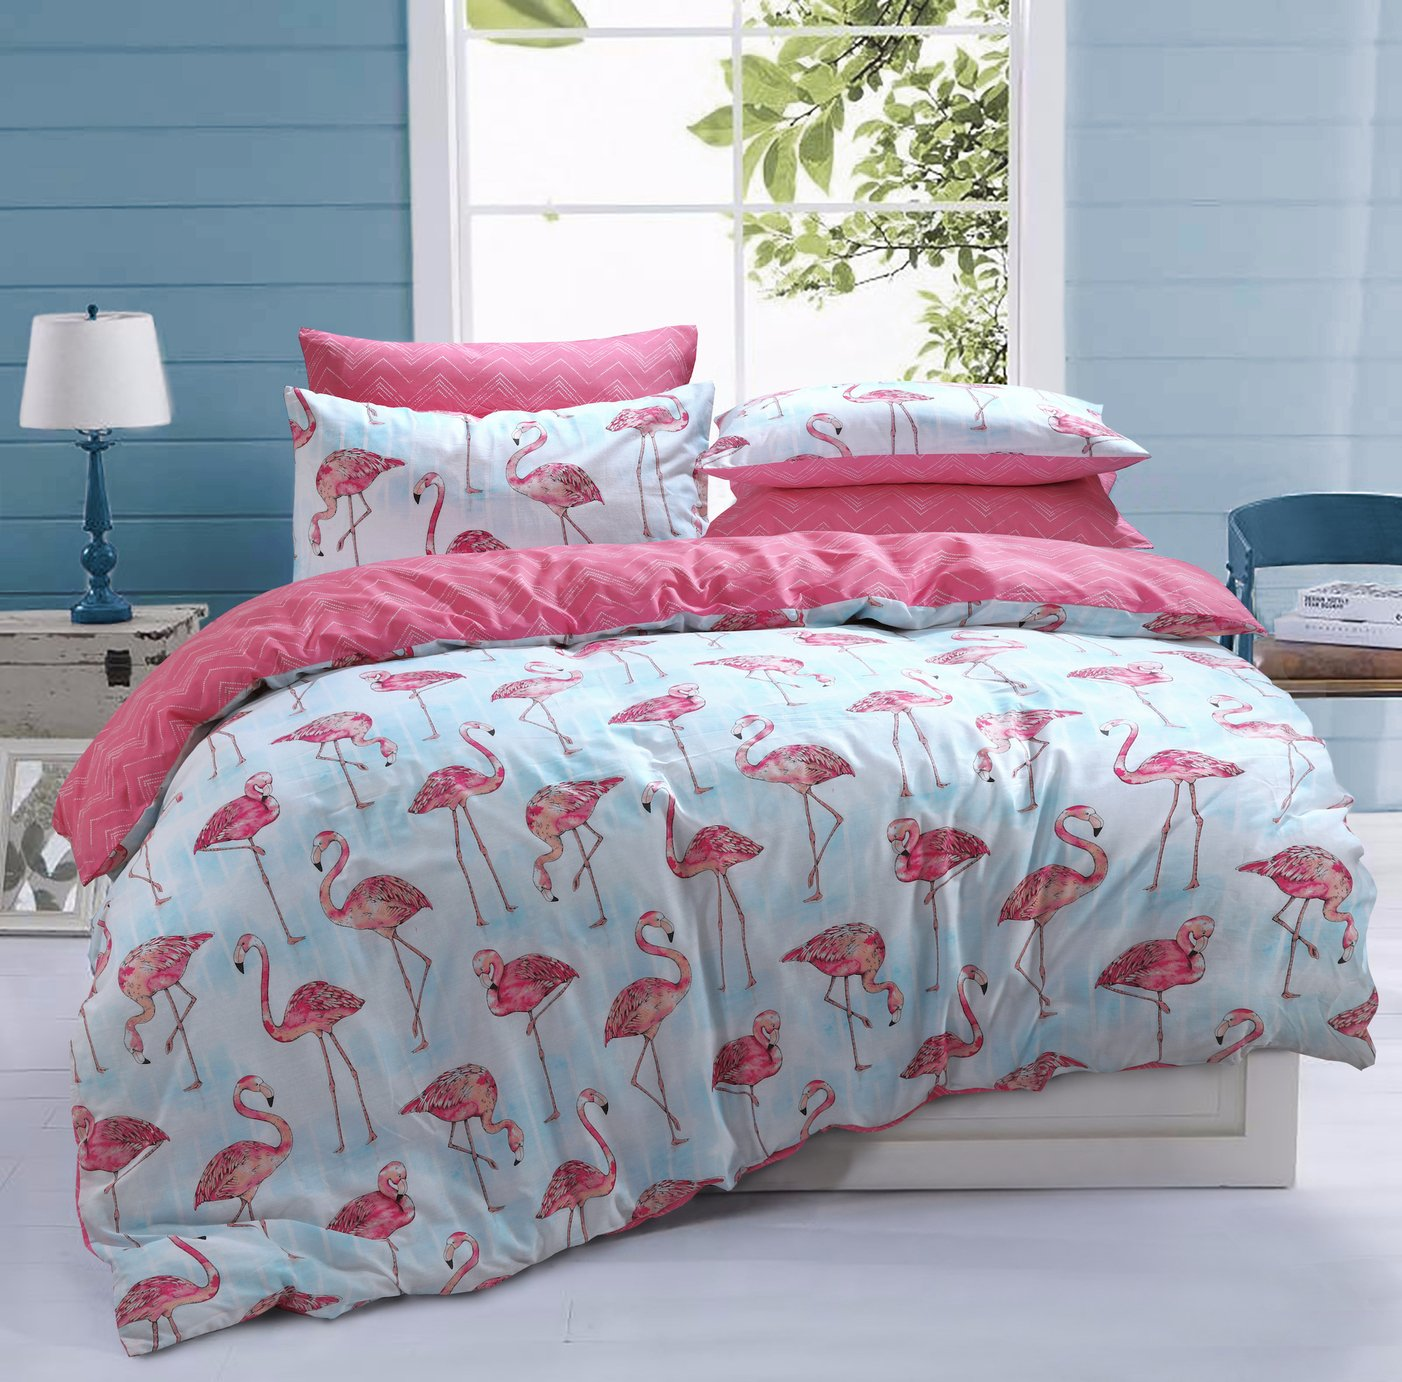 Argos Home Flamingo Stripe Bedding Set - Single